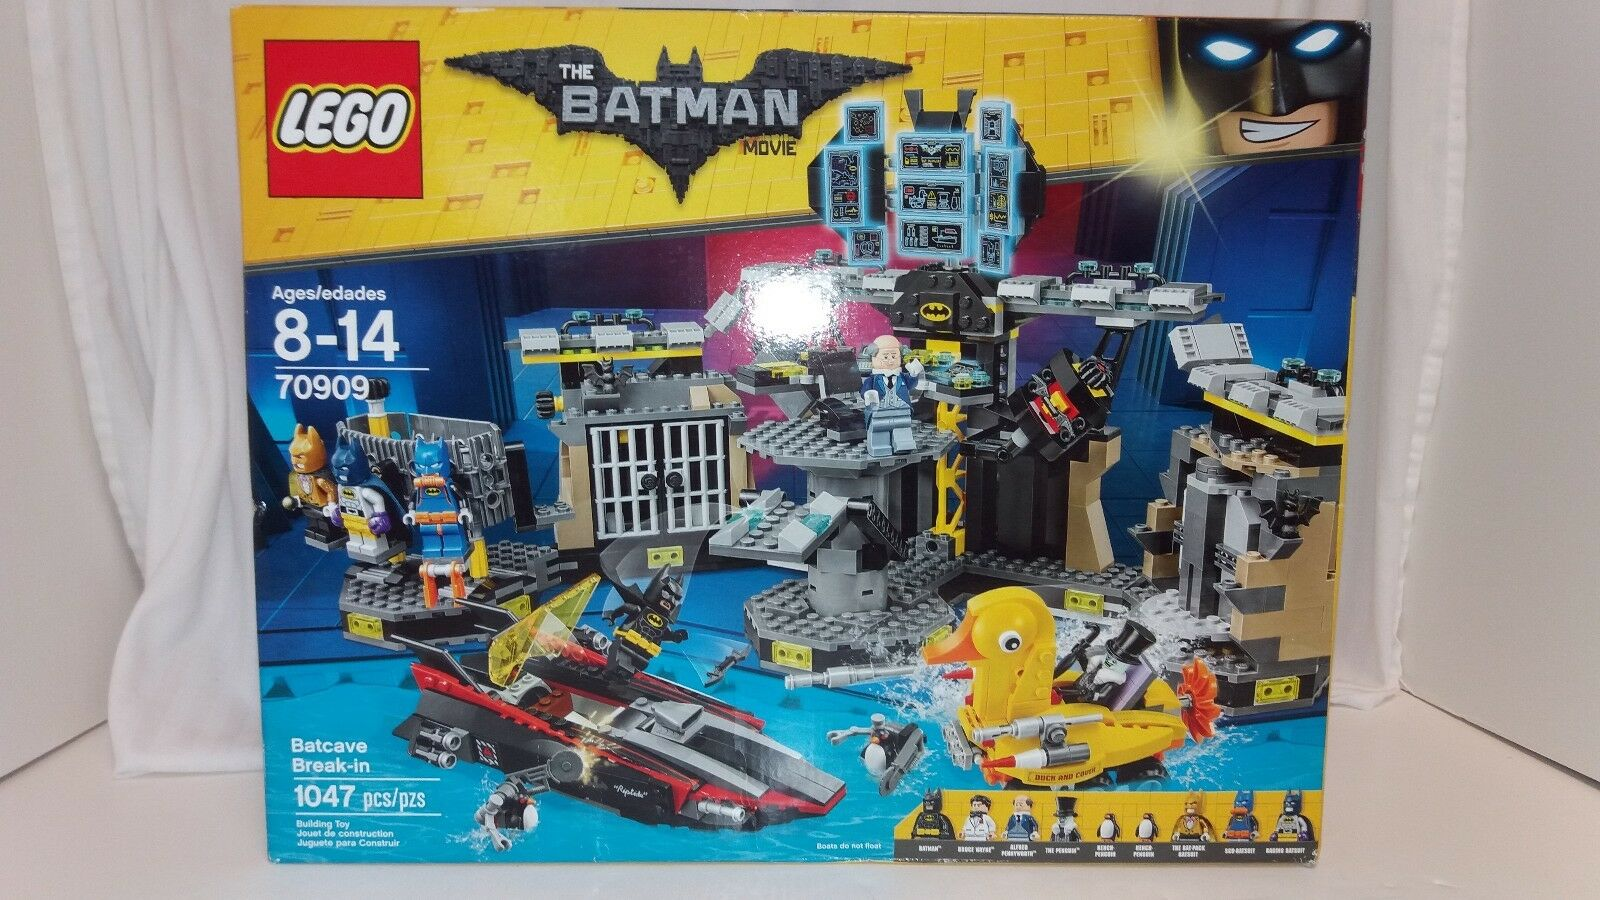 LEGO Batman Movie Batcave Break-in 2016 (70909) 1047 pcs NEW IN BOX